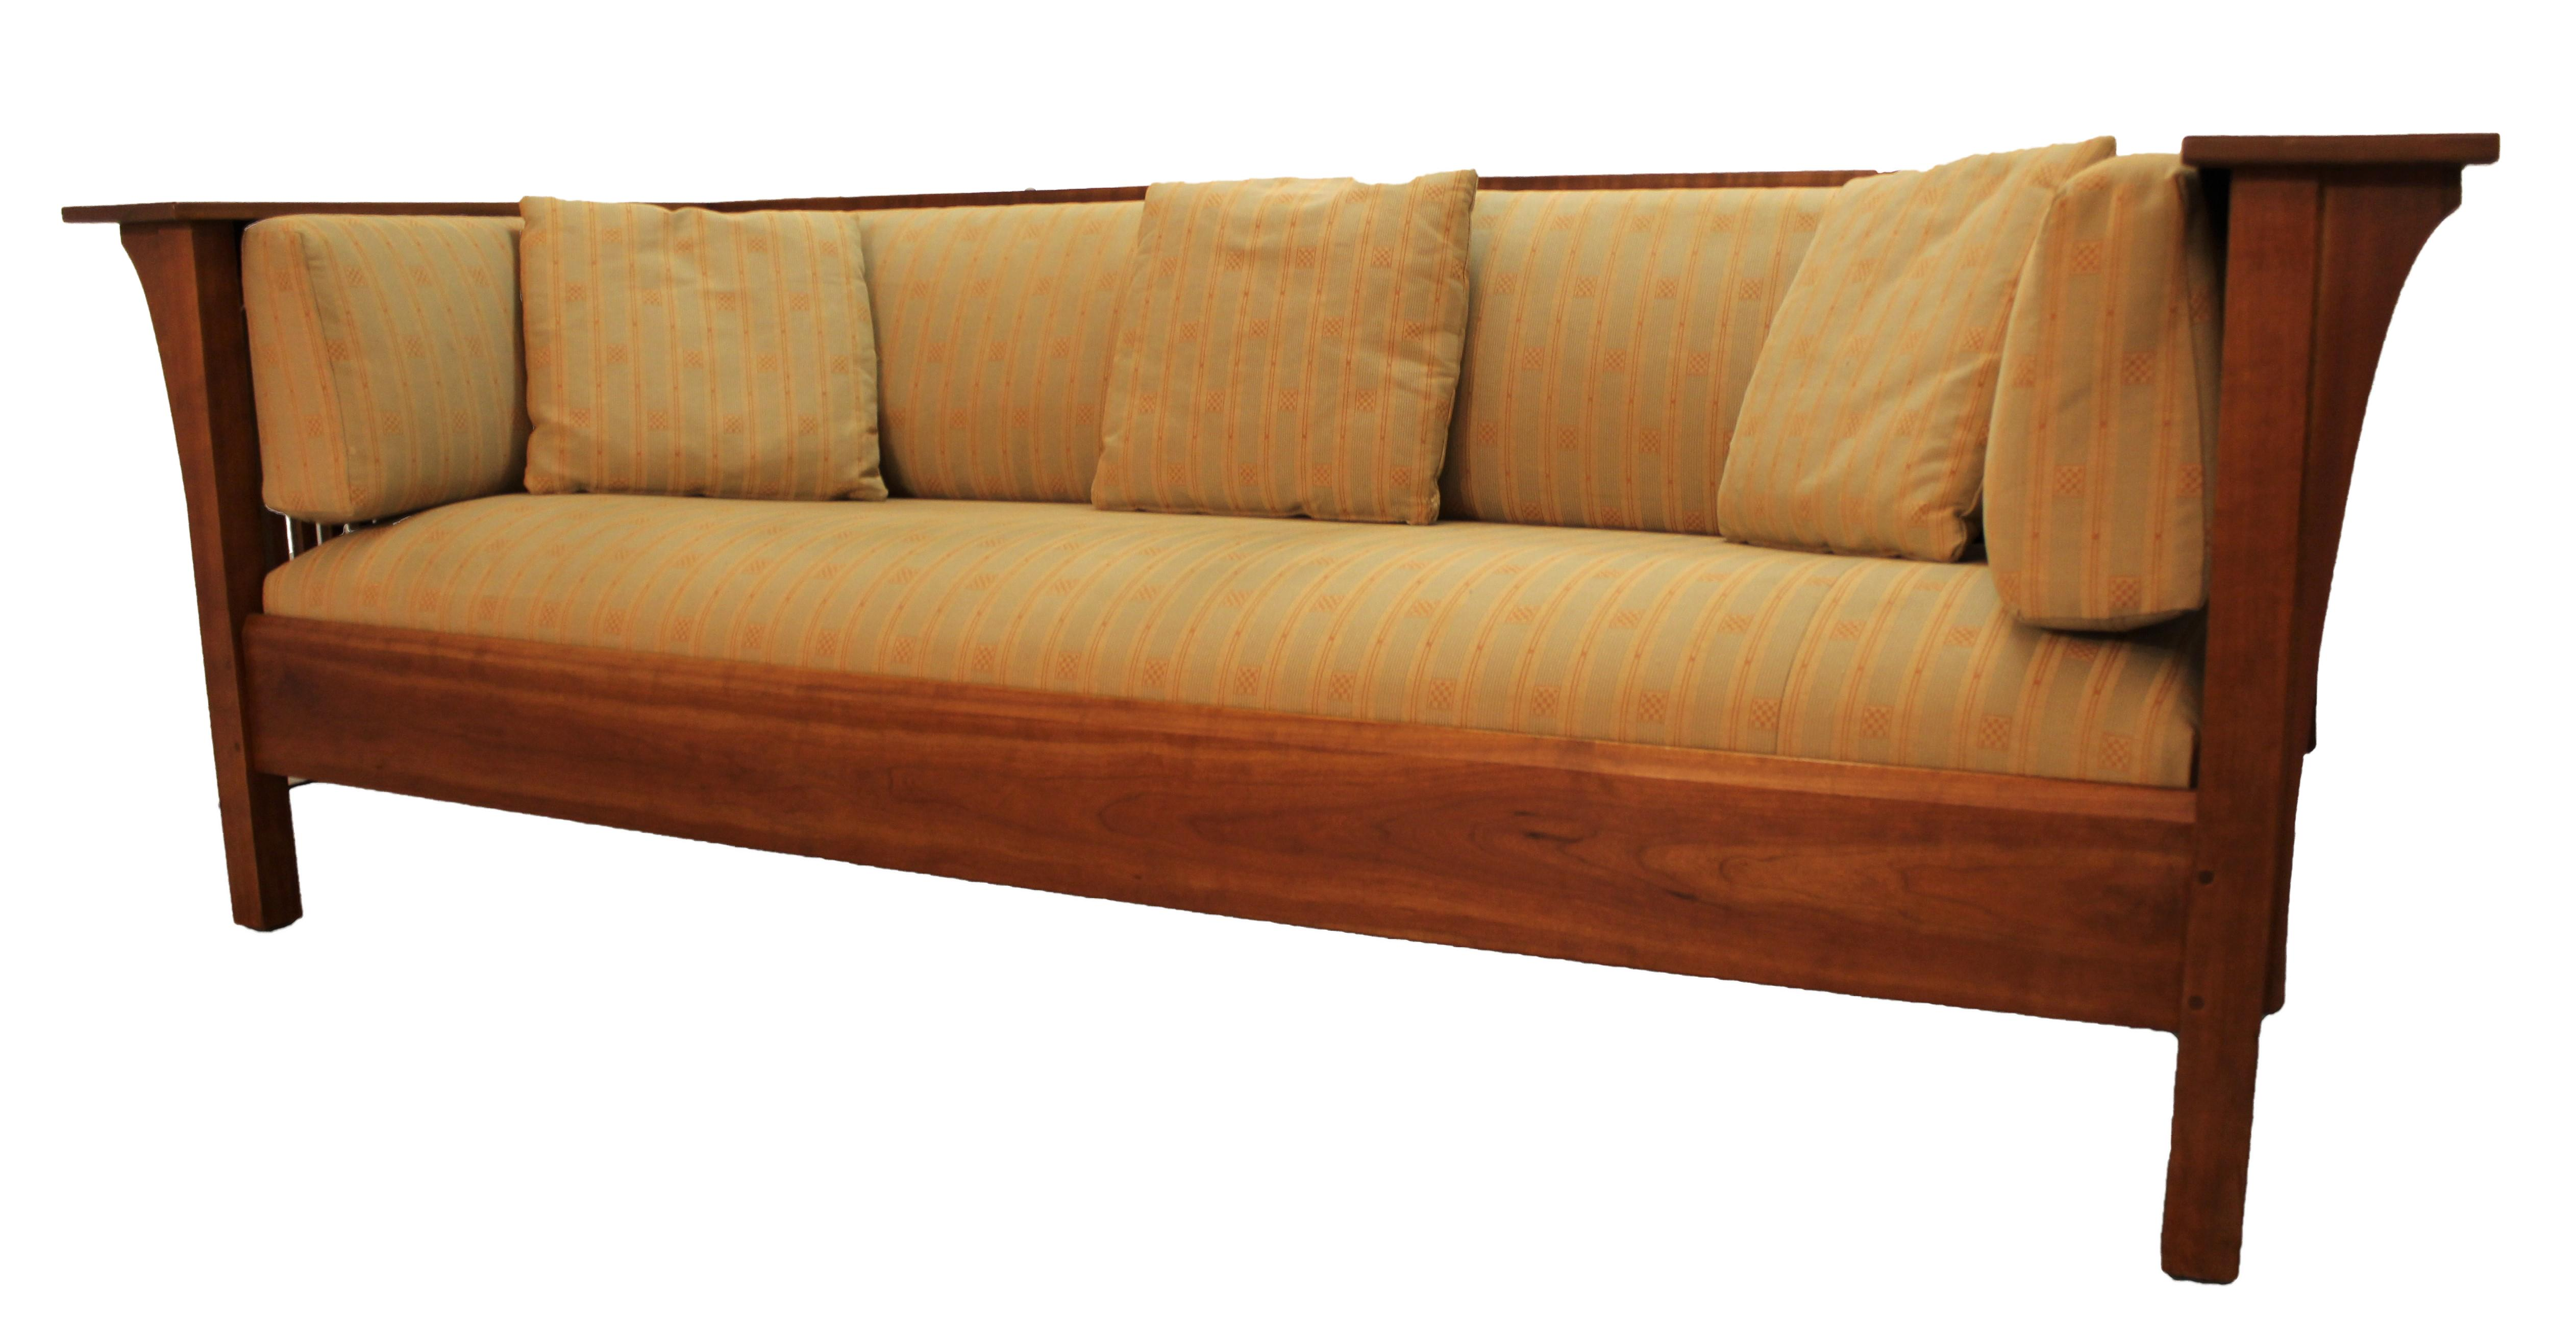 Arts and crafts style sofa - Image Of Mission Arts And Crafts Style Stickley Cherry Spindle Sofa